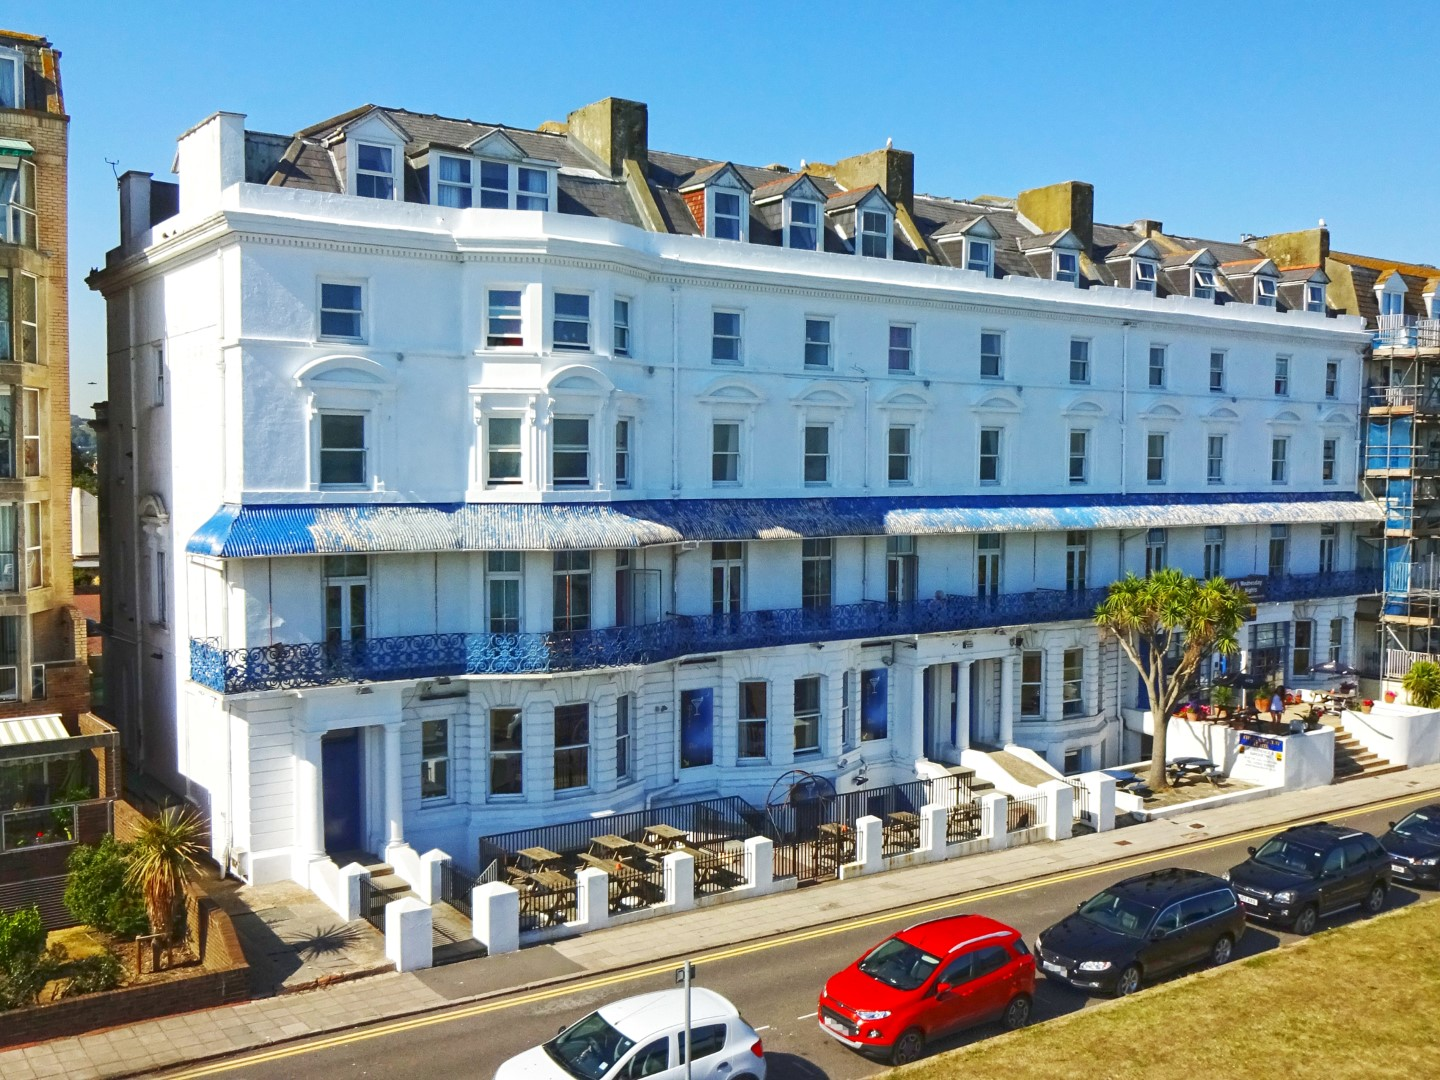 Southcliff Hotel (Large)